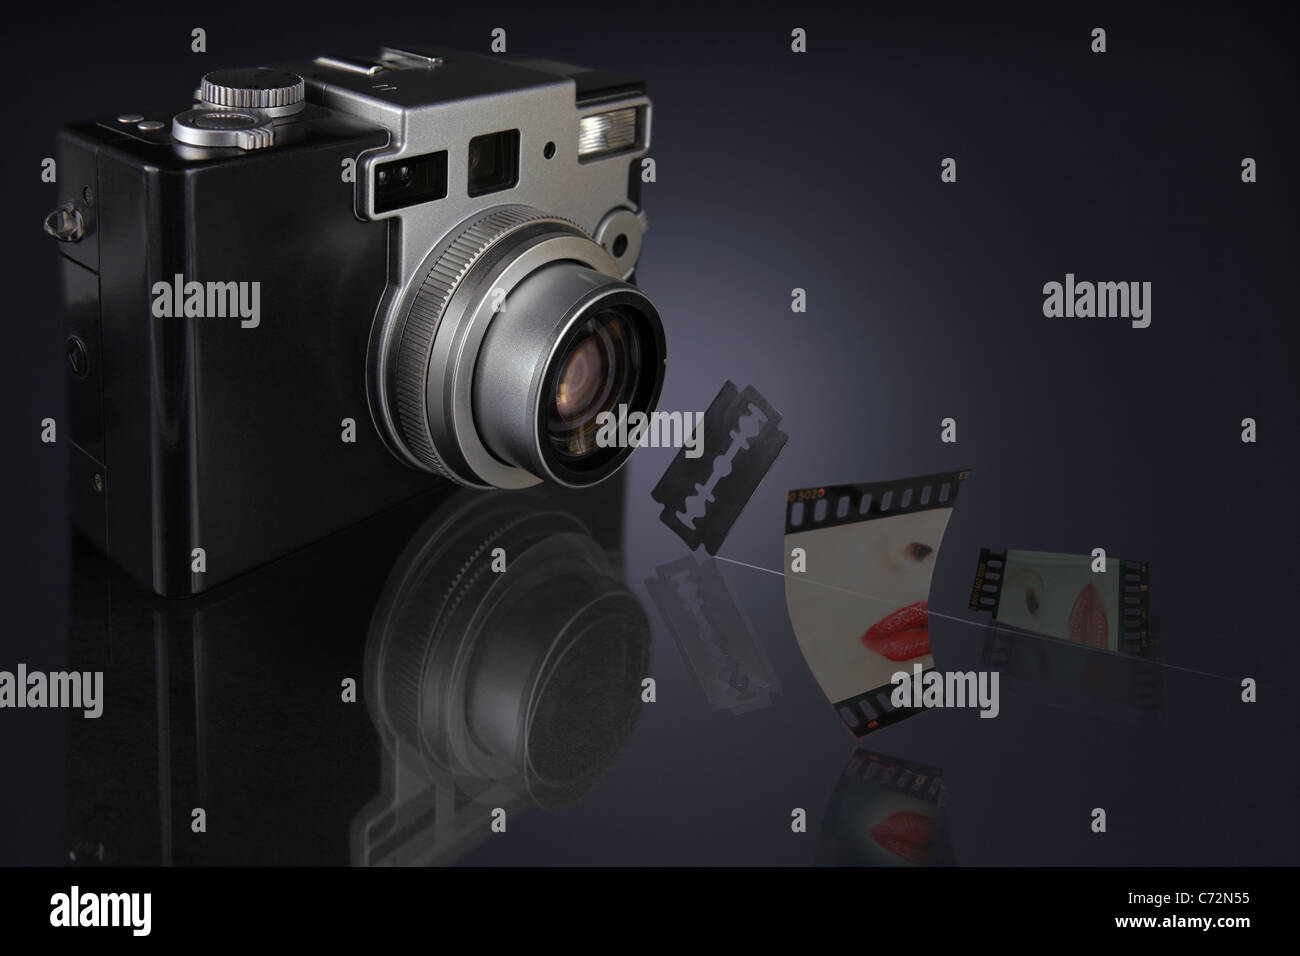 camera with lens focused on razor blade hanging in mid air and a slide cut sharply into two pieces - Stock Image